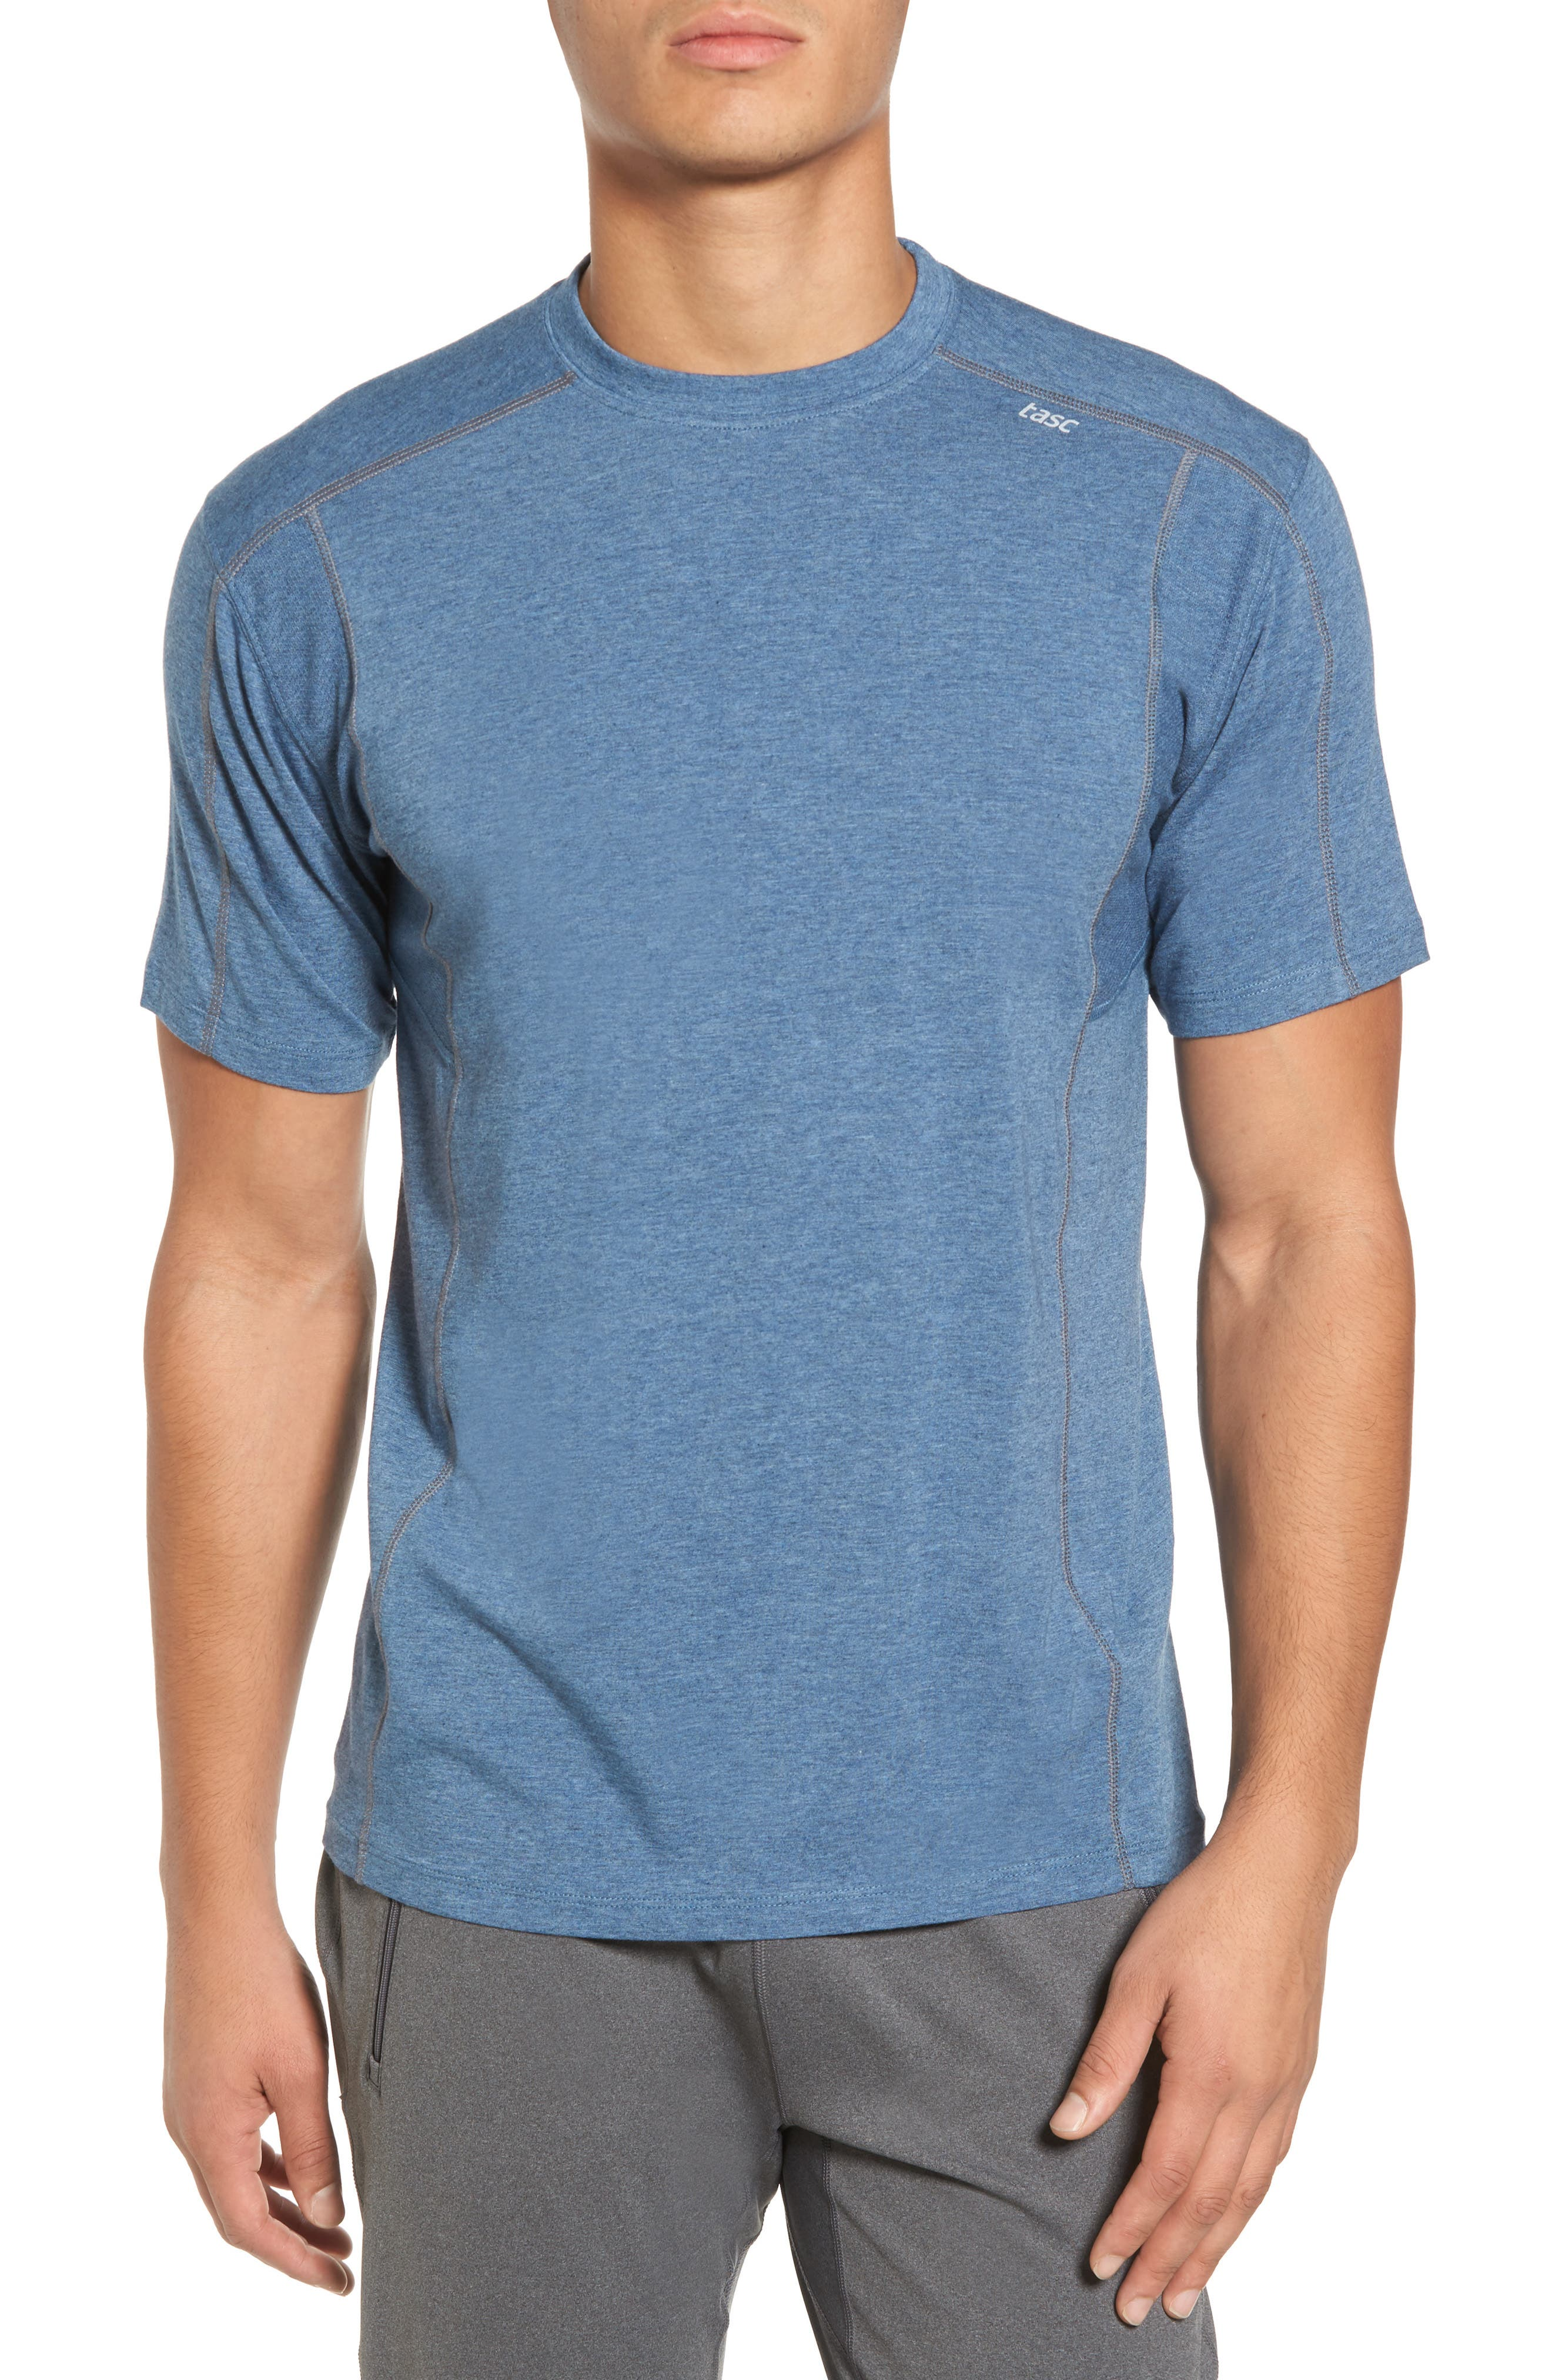 Tasc Performance Charge Semi-Fitted T-Shirt